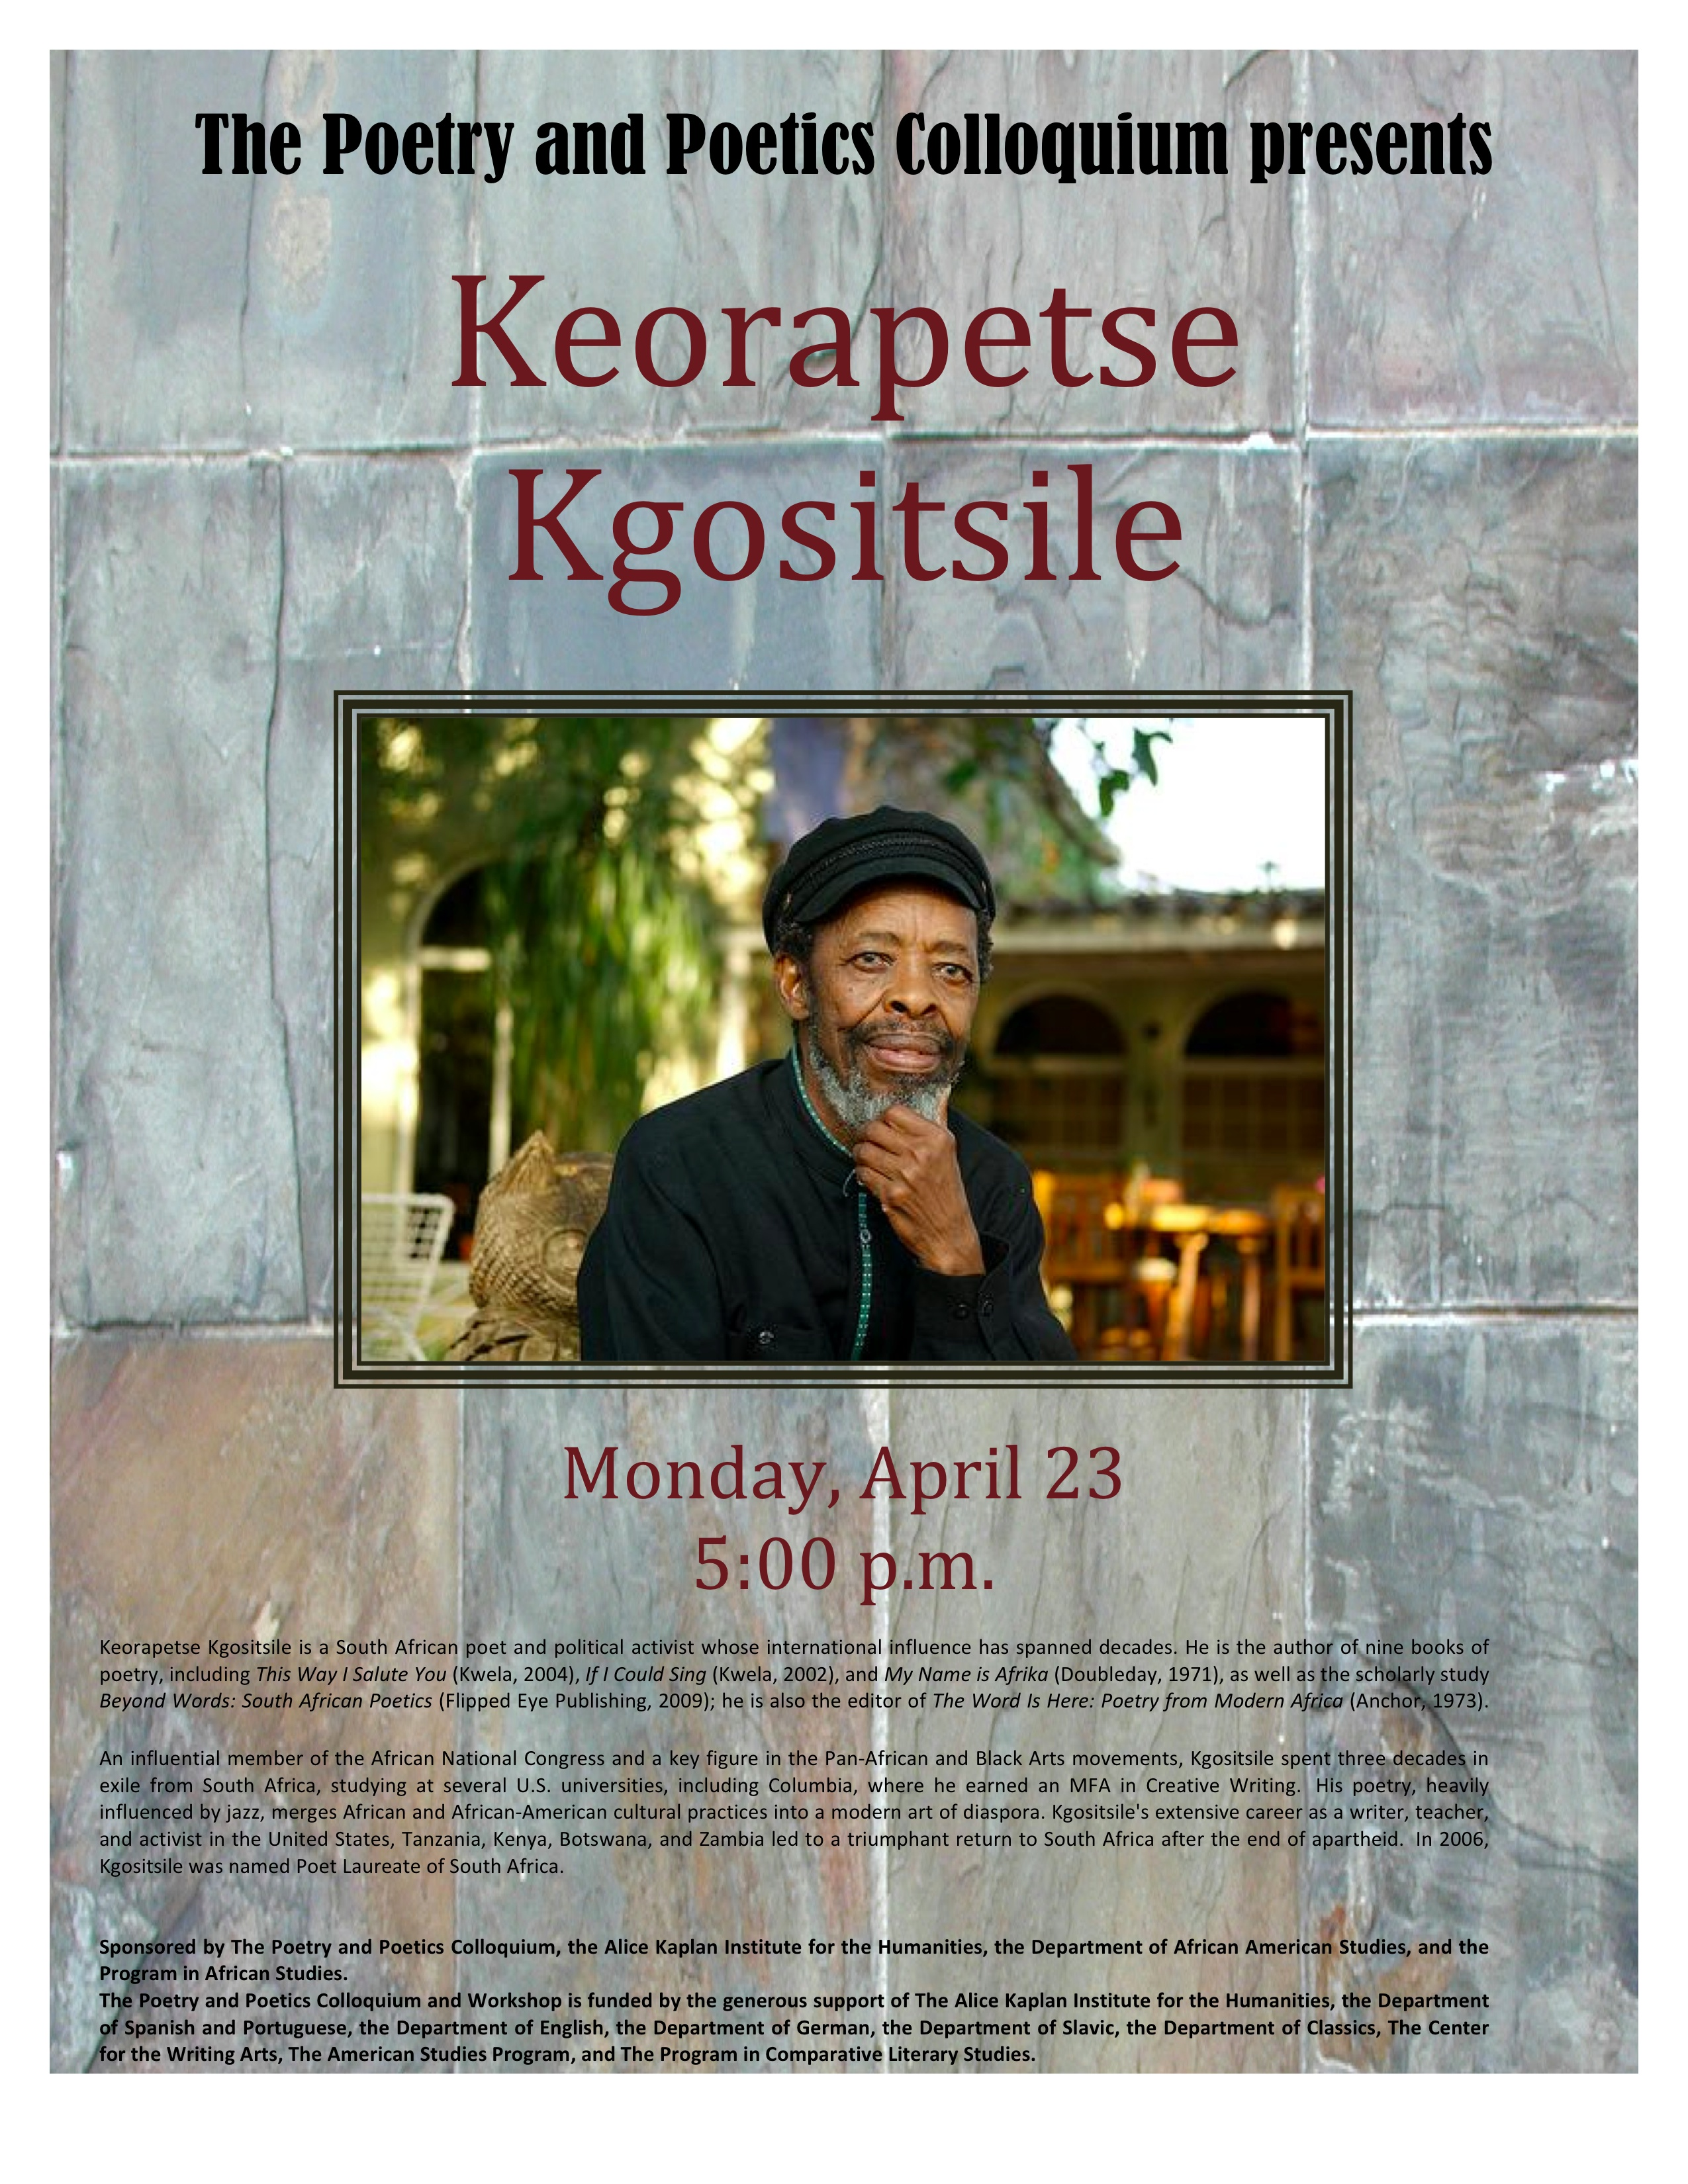 Kgositsile poster